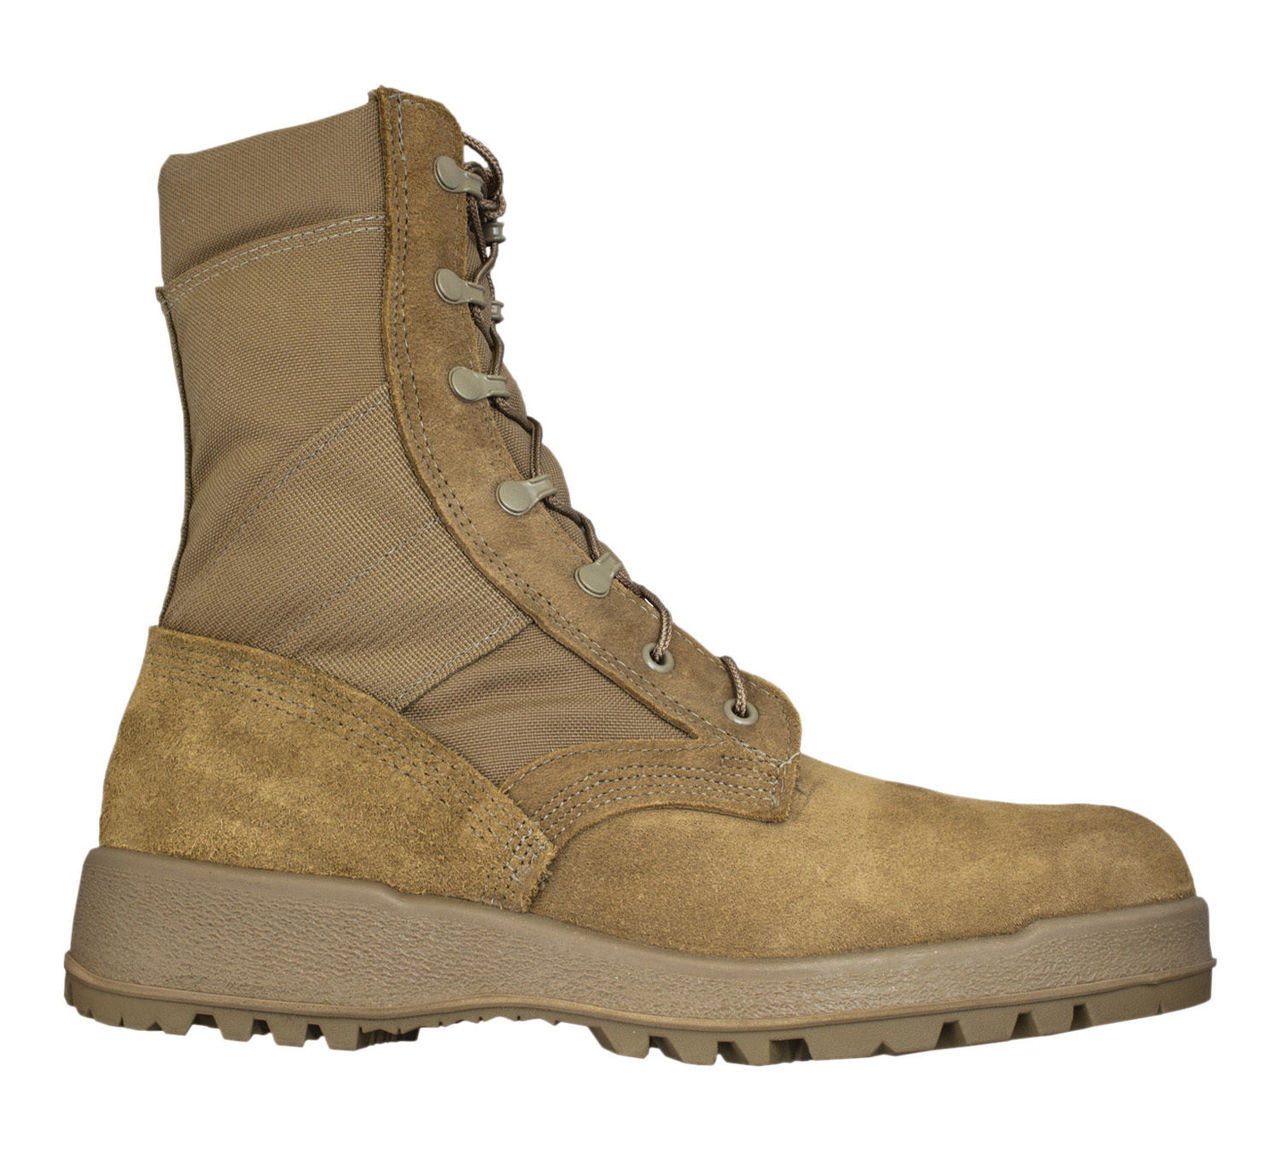 a09c5c657d5 McRae USGI Army Hot Weather Boots Vents MADE IN USA Breathable Boots NEW